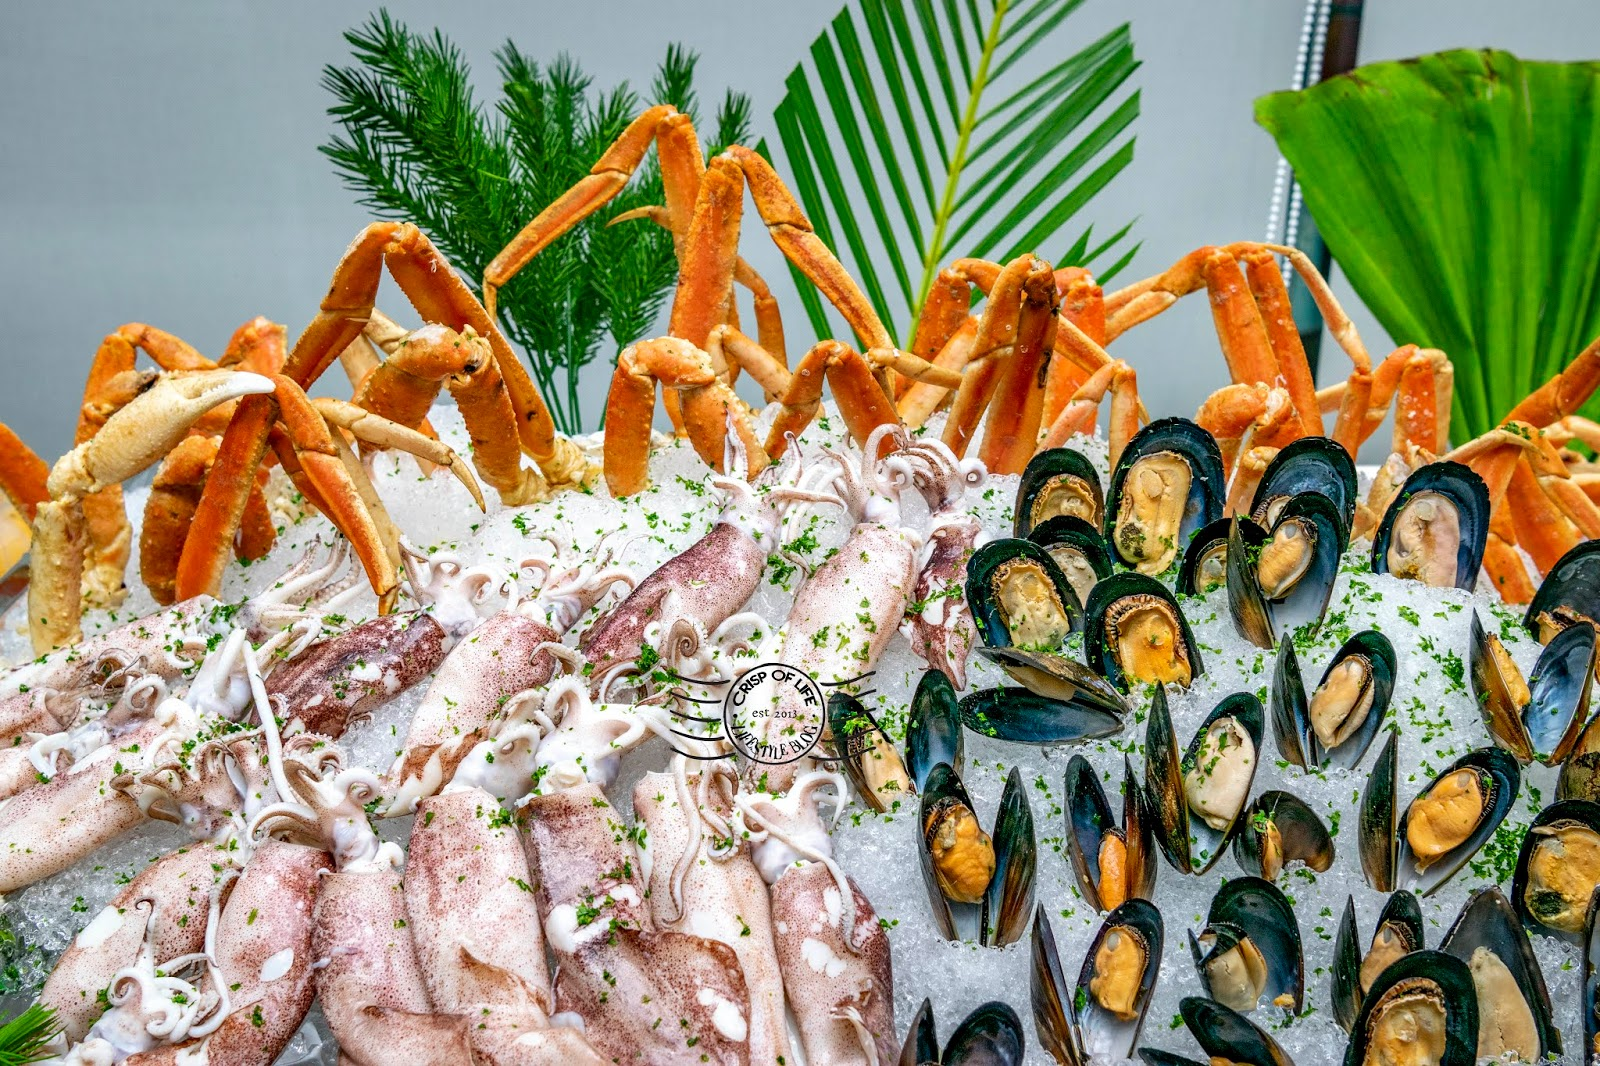 Seafood Galore Buffet Dinner with Live Seafood & Free Flow of Beer @ Hompton by The Beach, Penang